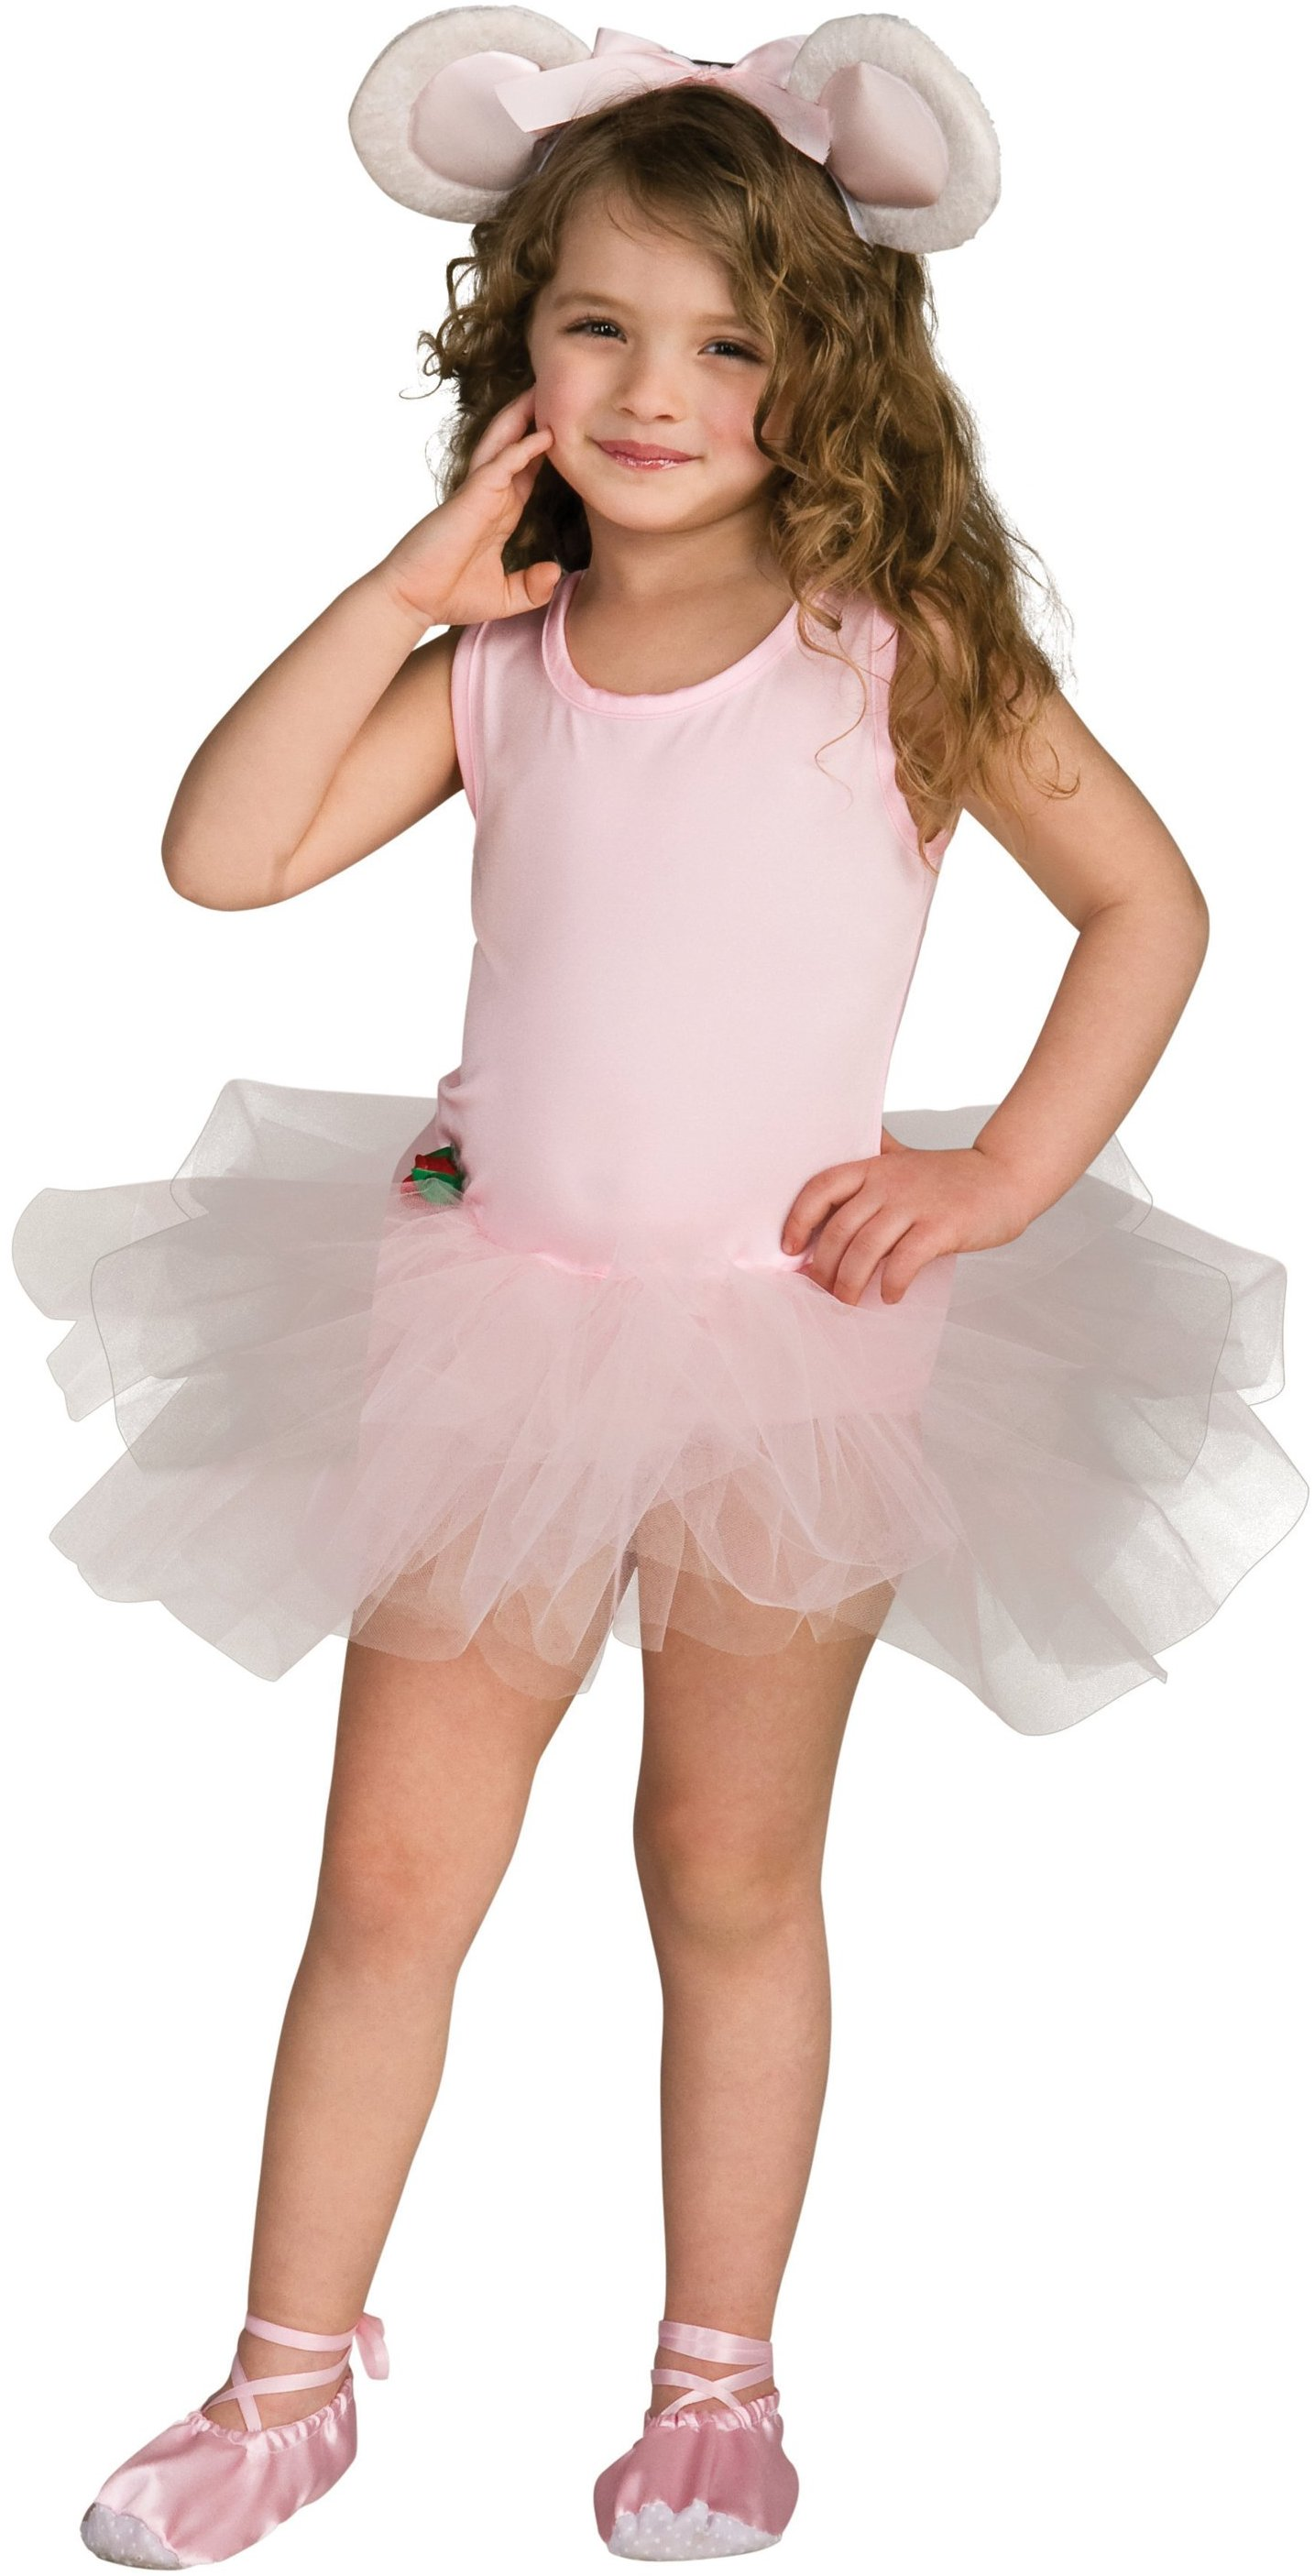 DELUXE ANGELINA BALLERINA*SOLD OUT SZ 2-4 ...  sc 1 st  Crazy For Costumes & All u003e Girls u003e Other - Ballerinas Cheerleaders etc... - Crazy For ...